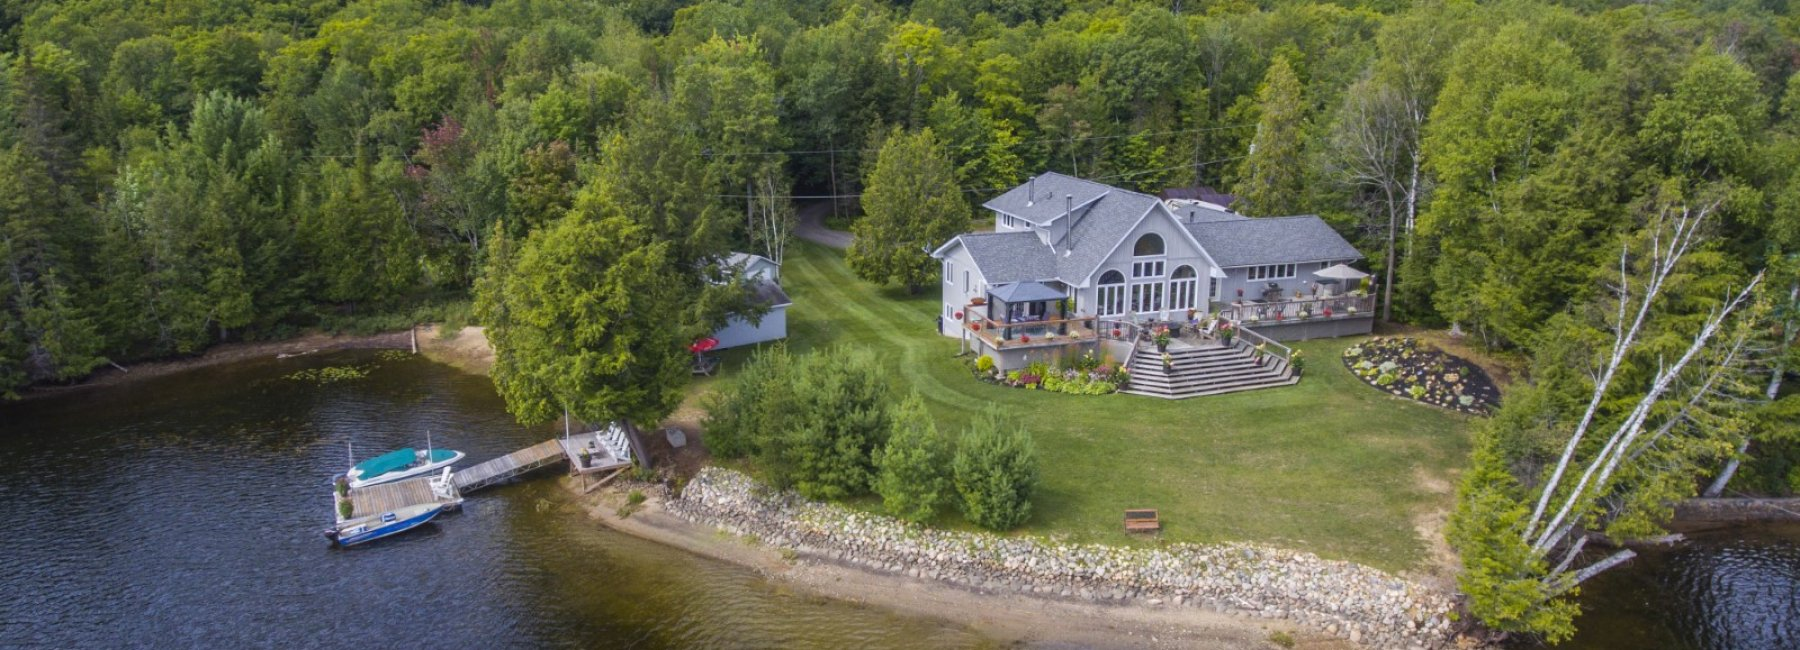 1221 Sullivan Road, Haliburton - Haliburton Lake